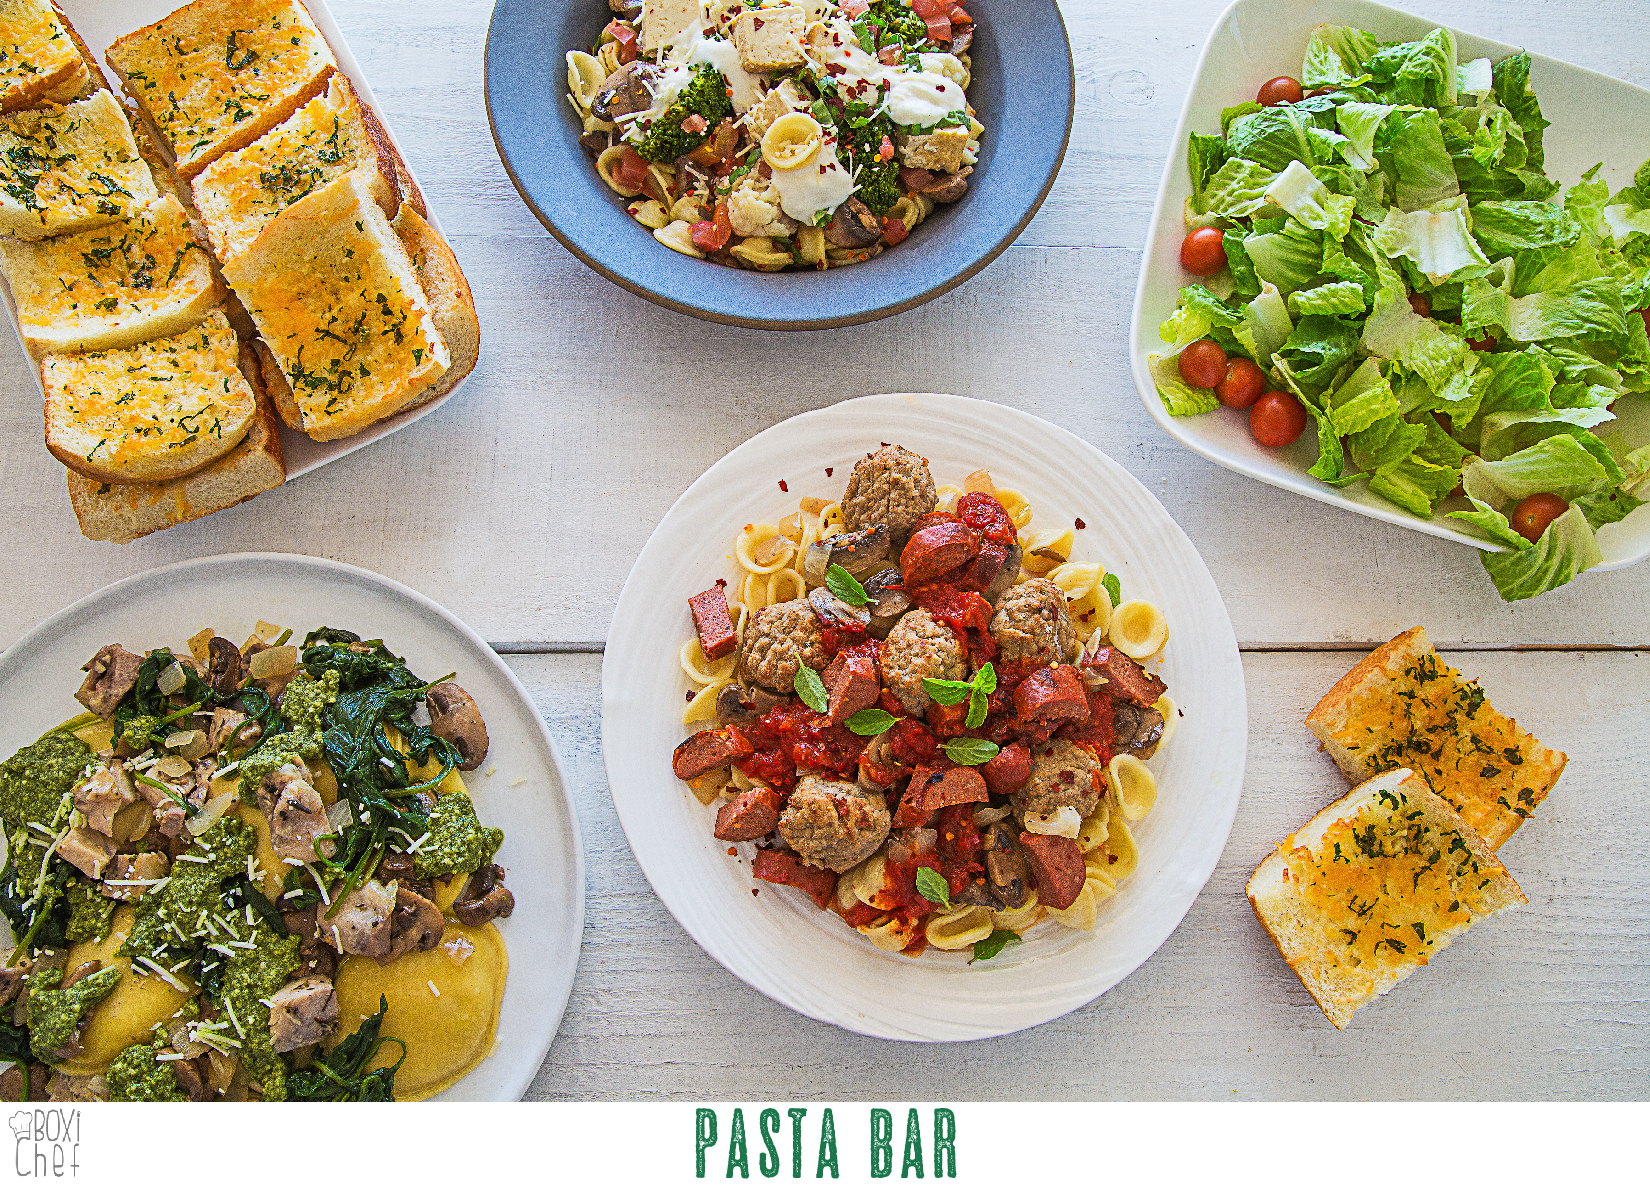 Pasta Bar - Bird eye Group Plated-01.jpg